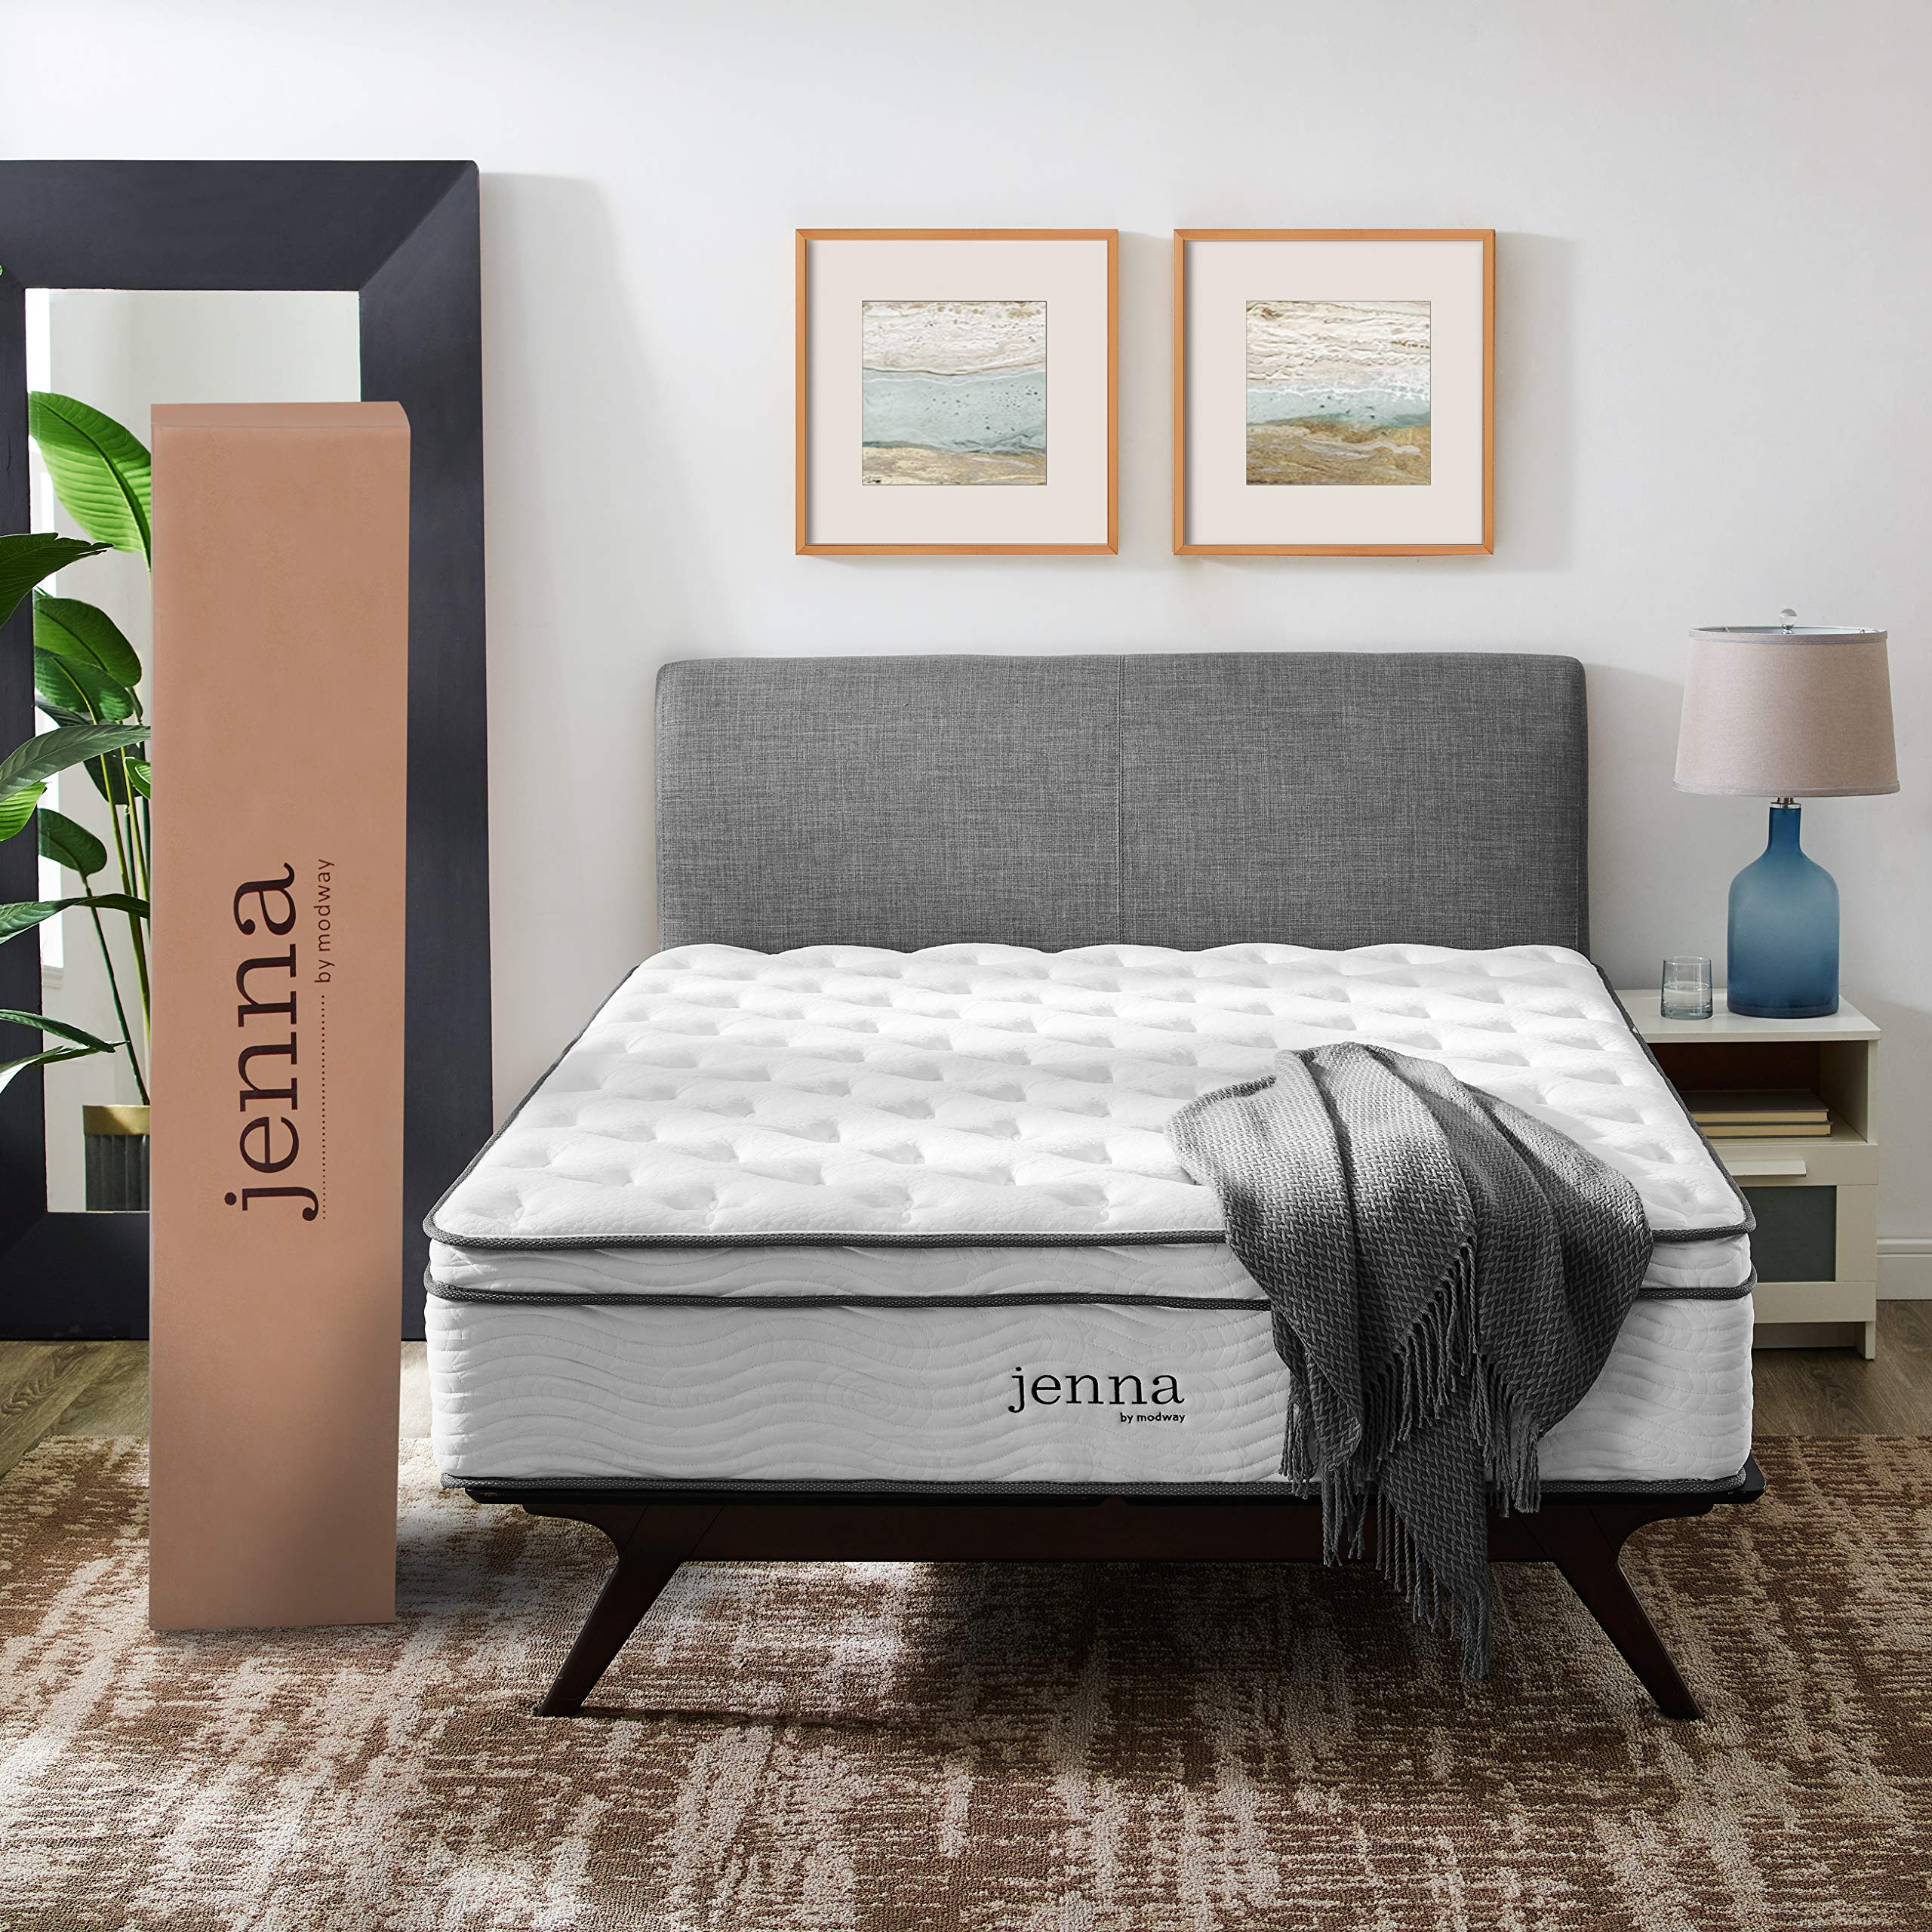 Modway Jenna 14'' California King Innerspring Mattress - Top Quality Quilted Pillow Top - Individually Encased Pocket Coils - 10-Year Warranty by Modway